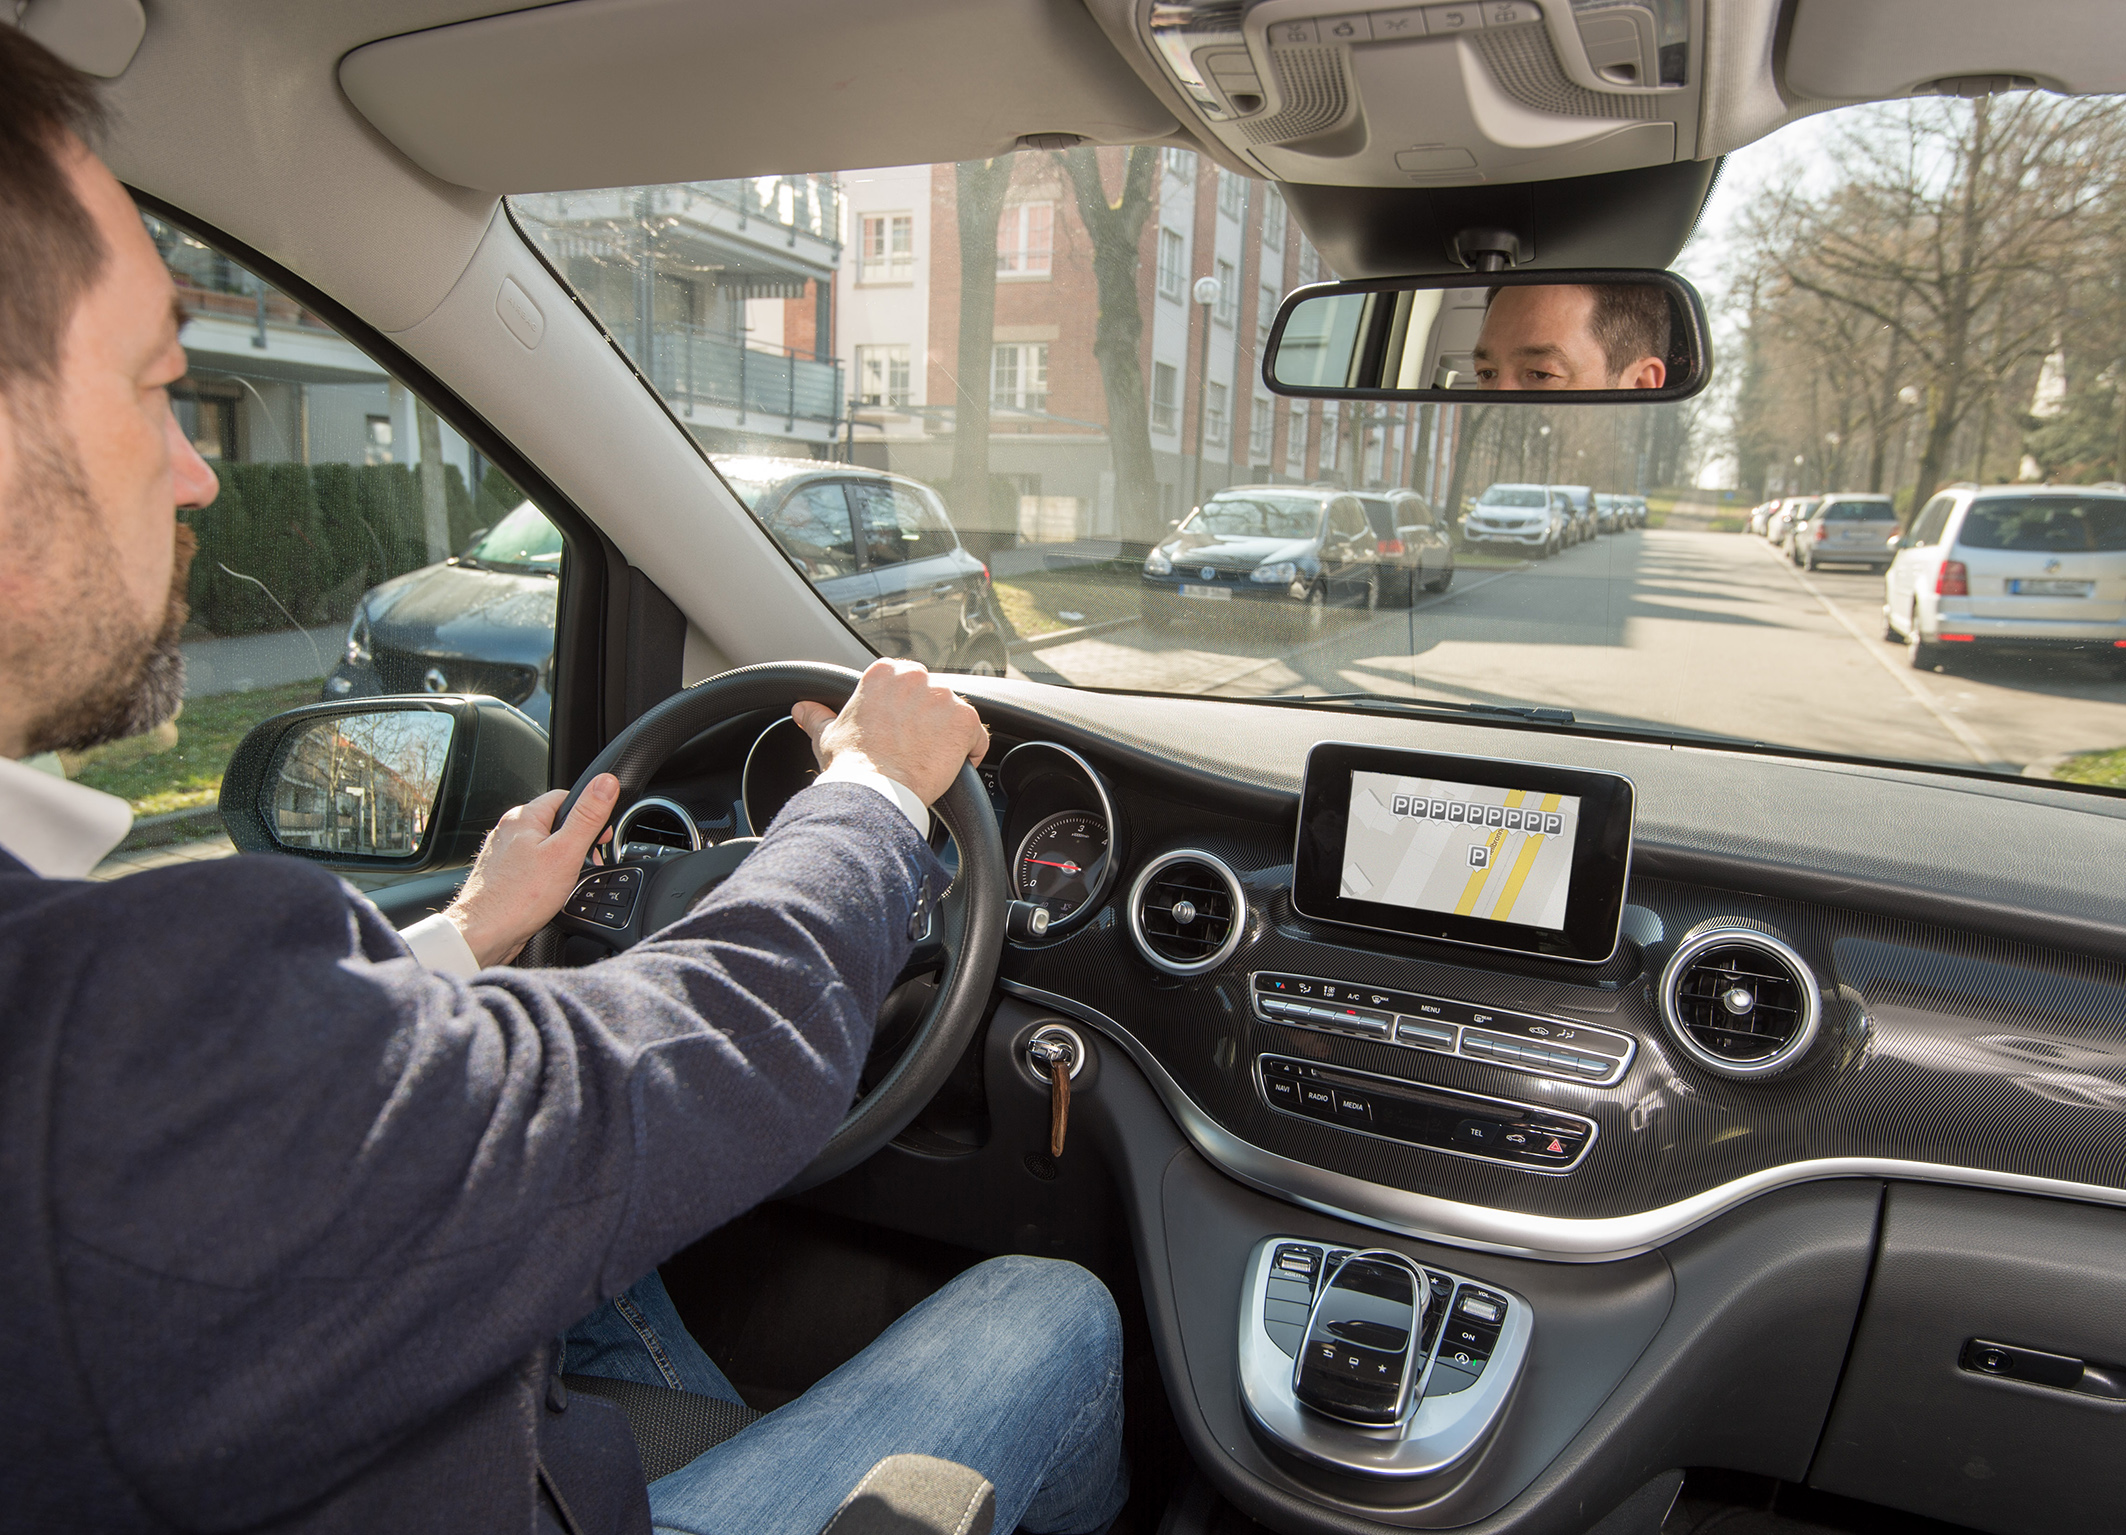 Bosch lets cars find parking spaces themselves